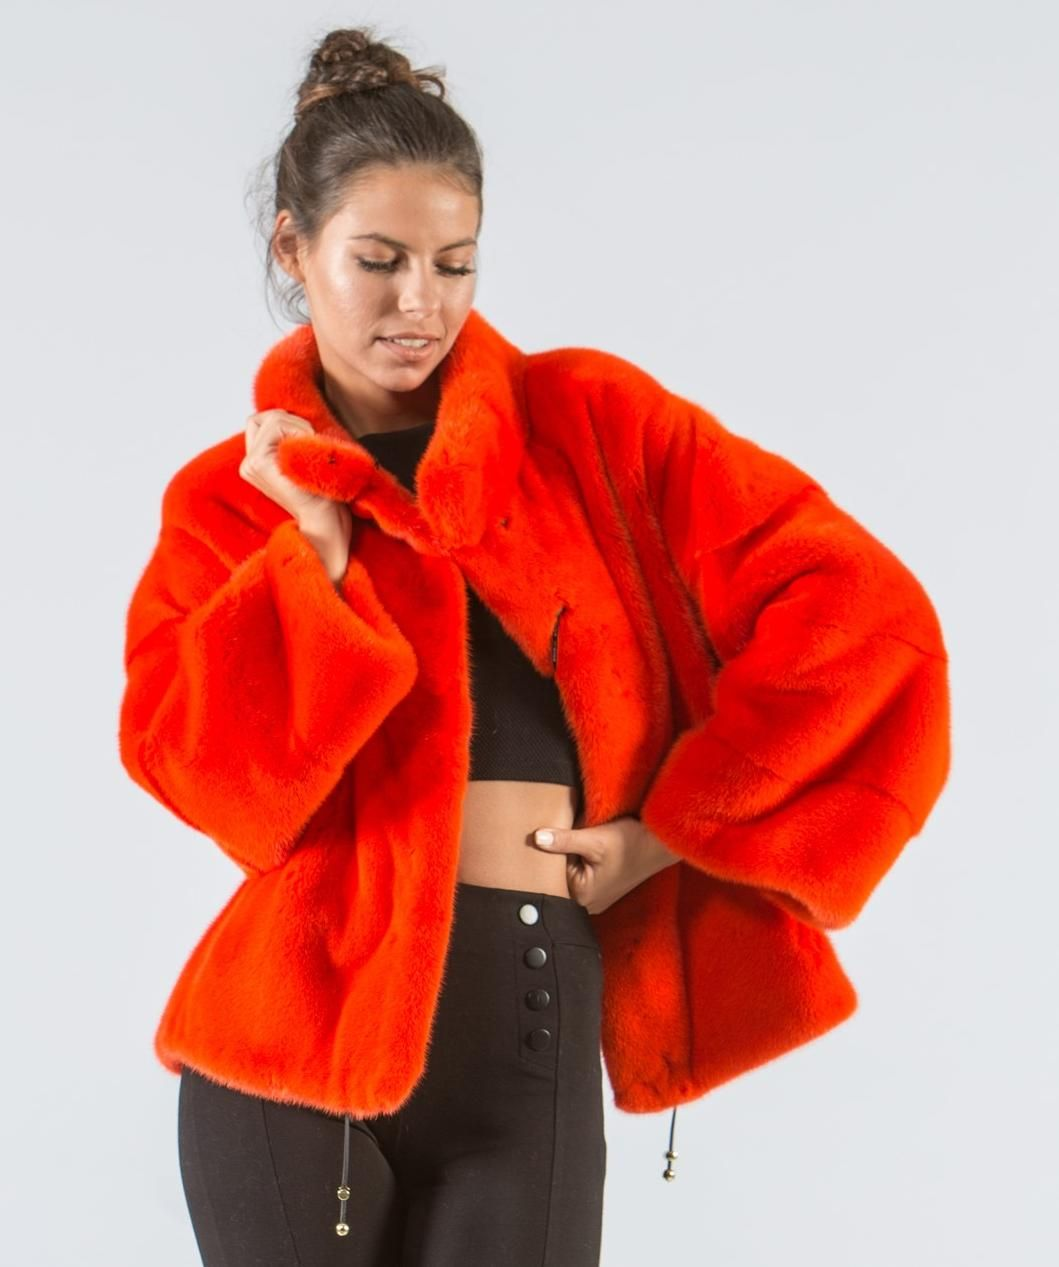 aaf28d7b317a Coral Mink Fur Jacket  coral  mink  fur  jacket  real  style  realfur   elegant  haute  luxury  chic  outfit  women  classy  online  store